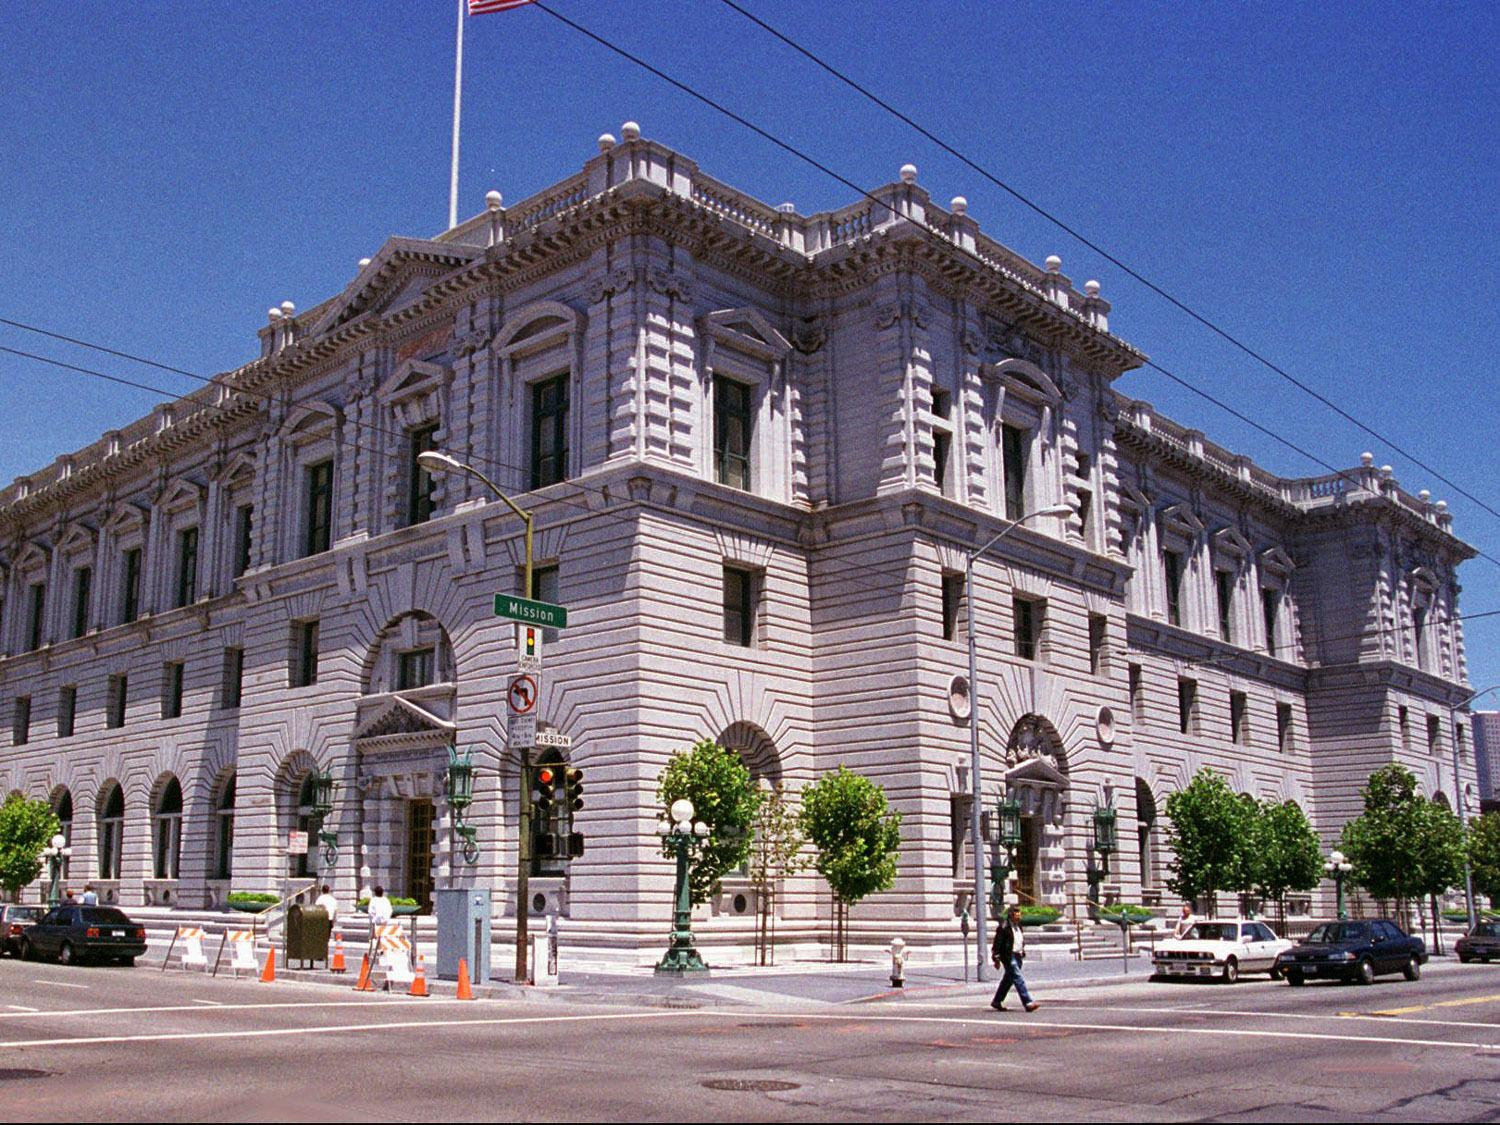 The 9th US Circuit Court of Appeals building in San Francisco is seen in a file photo. (Associated Press)